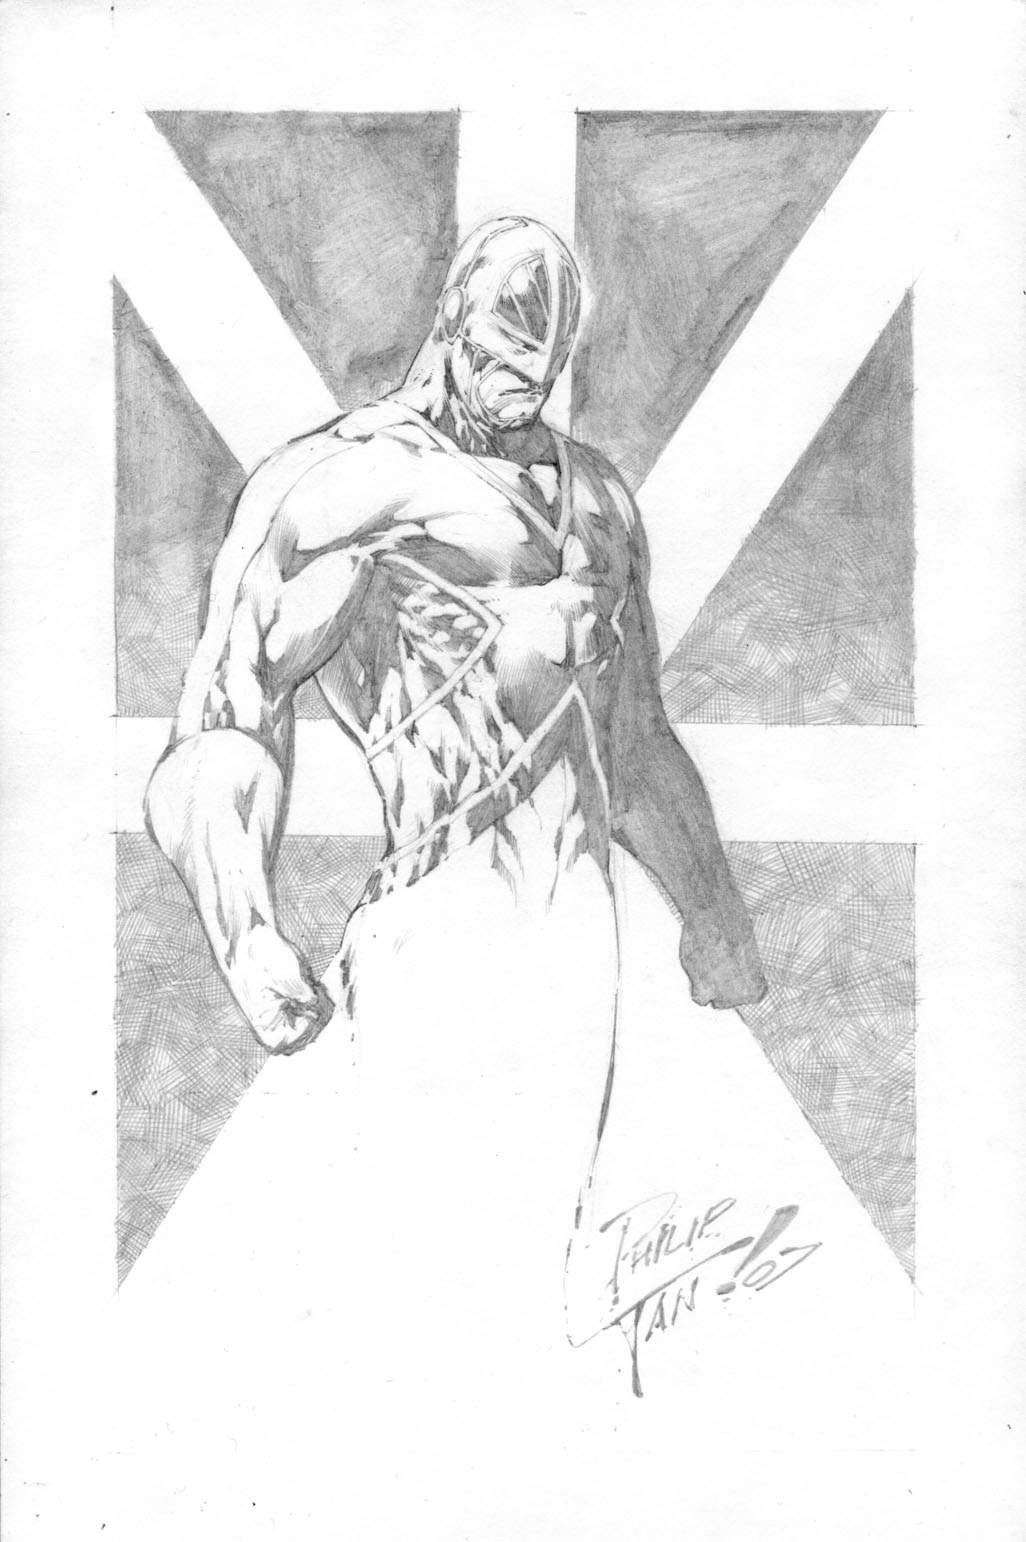 Capt. Britain sketch... by butones